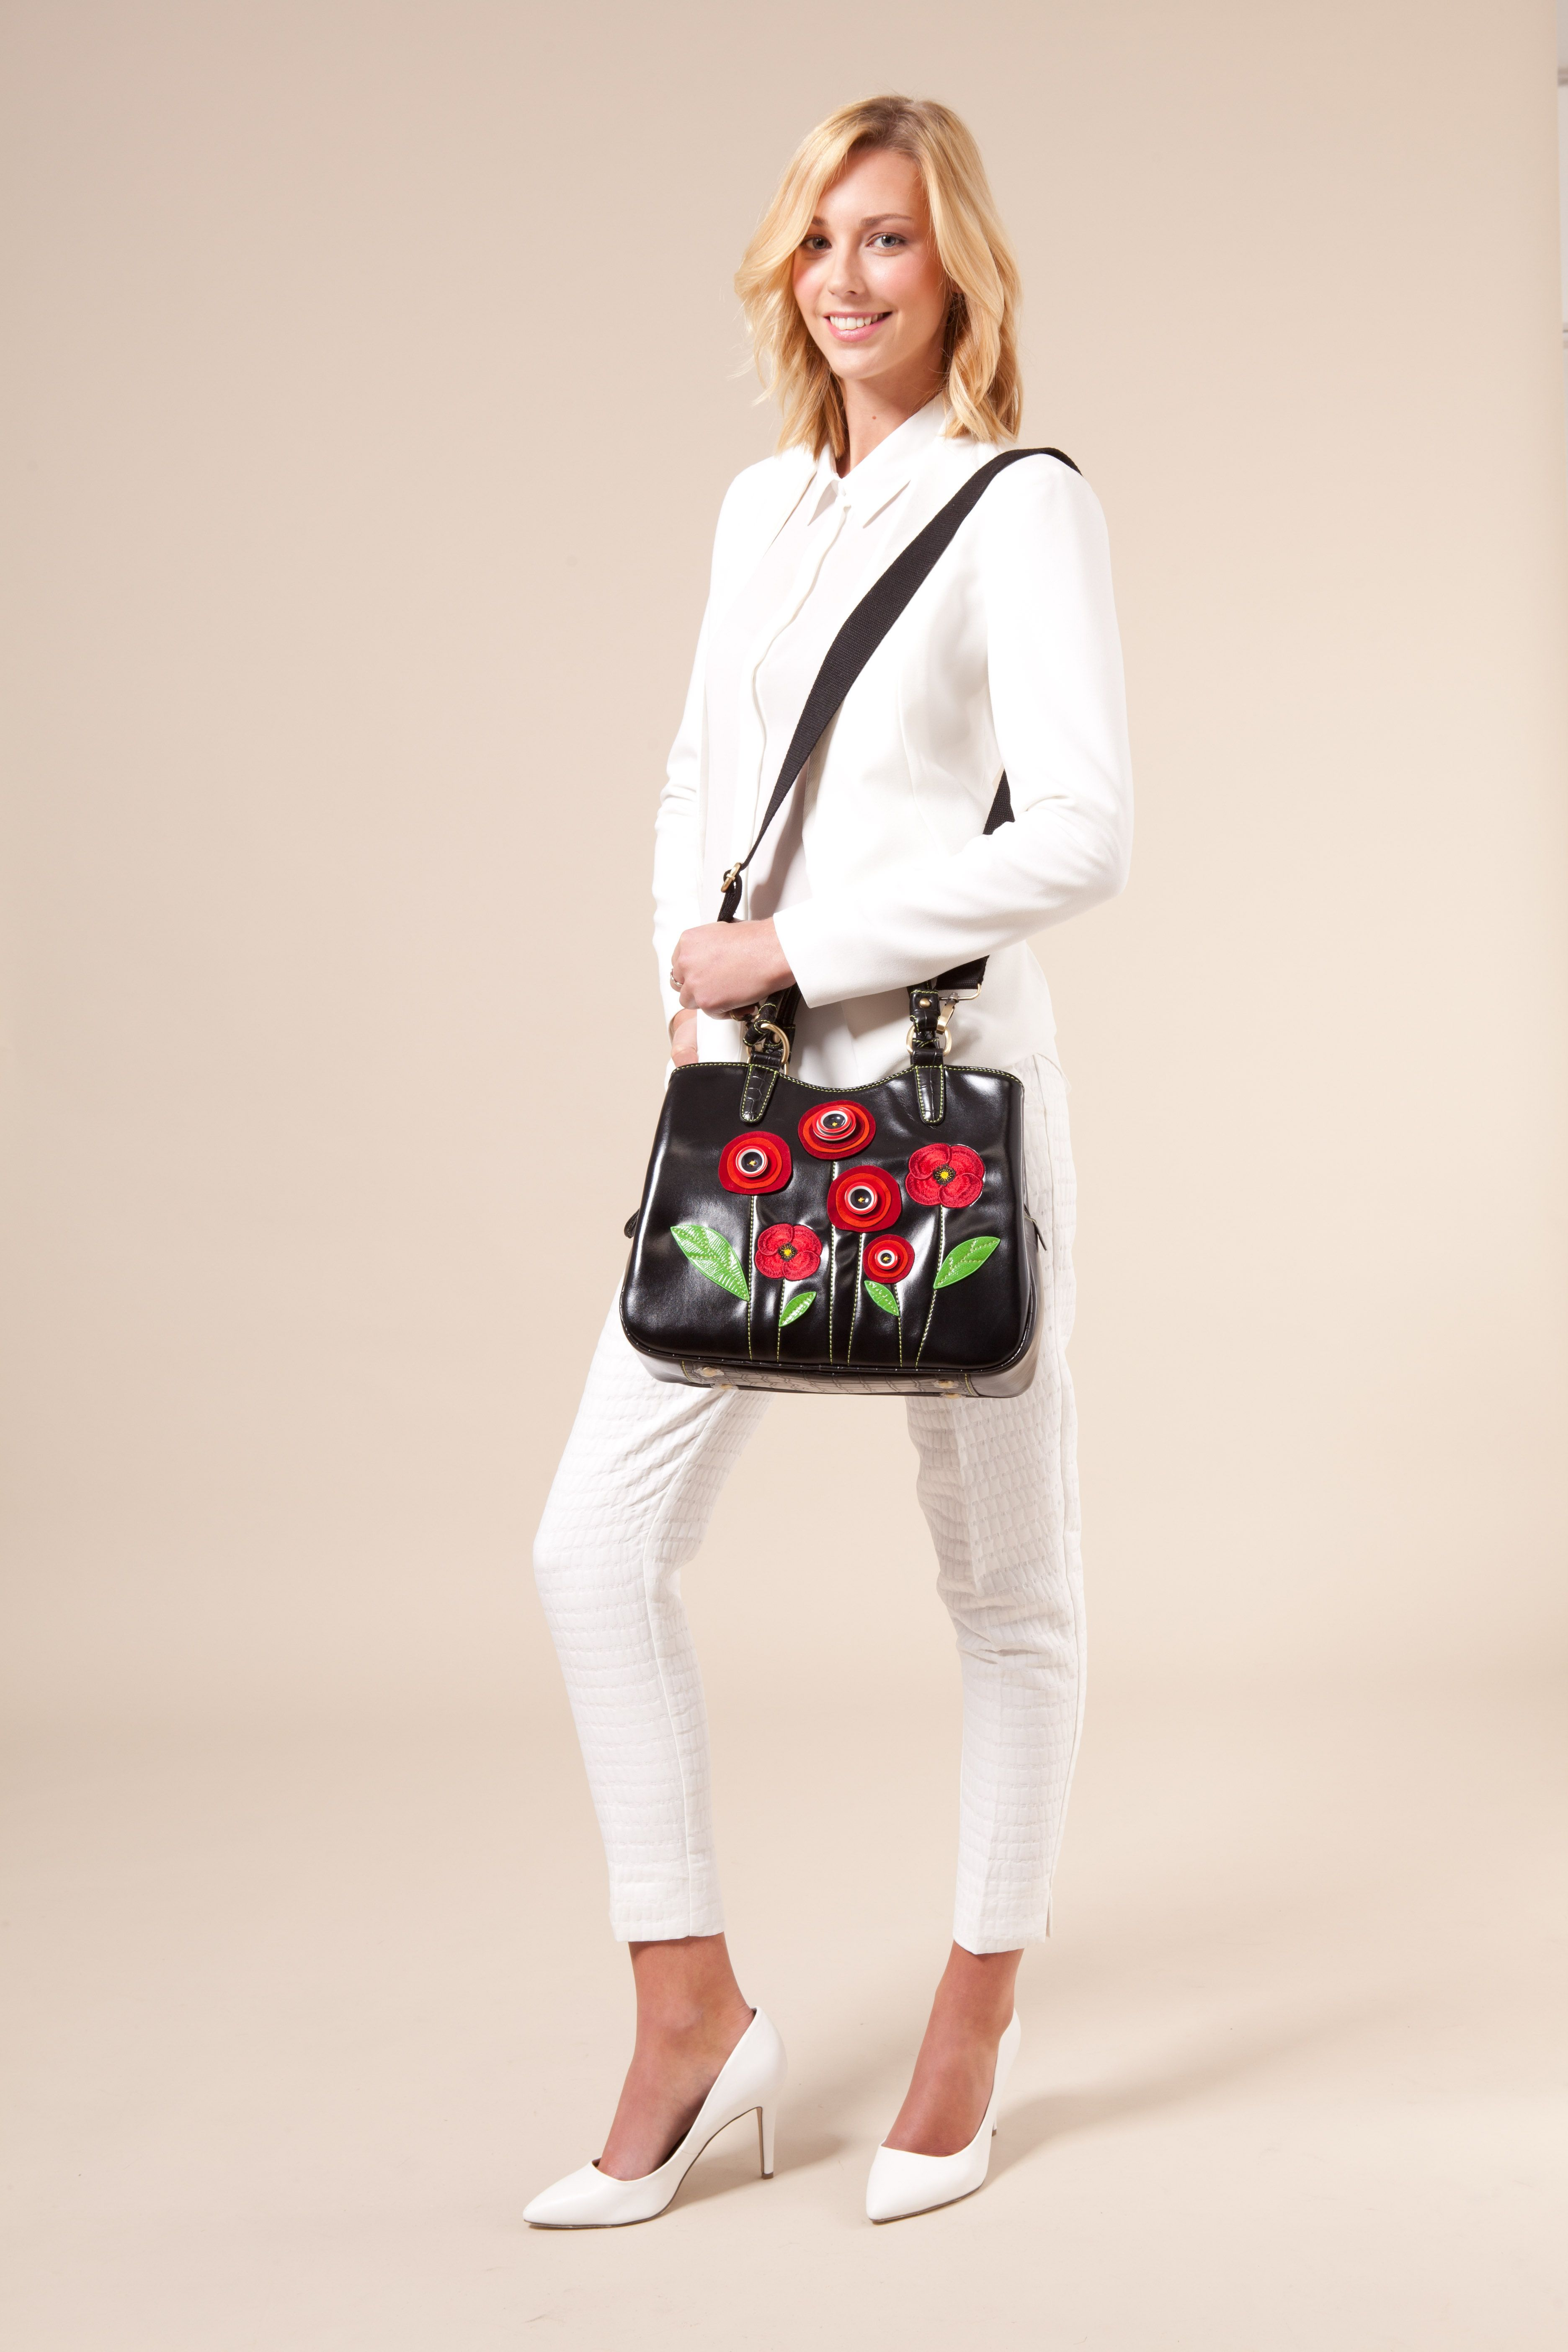 Roses are red, Violets are blue, shop at Vendula, you know you want too!